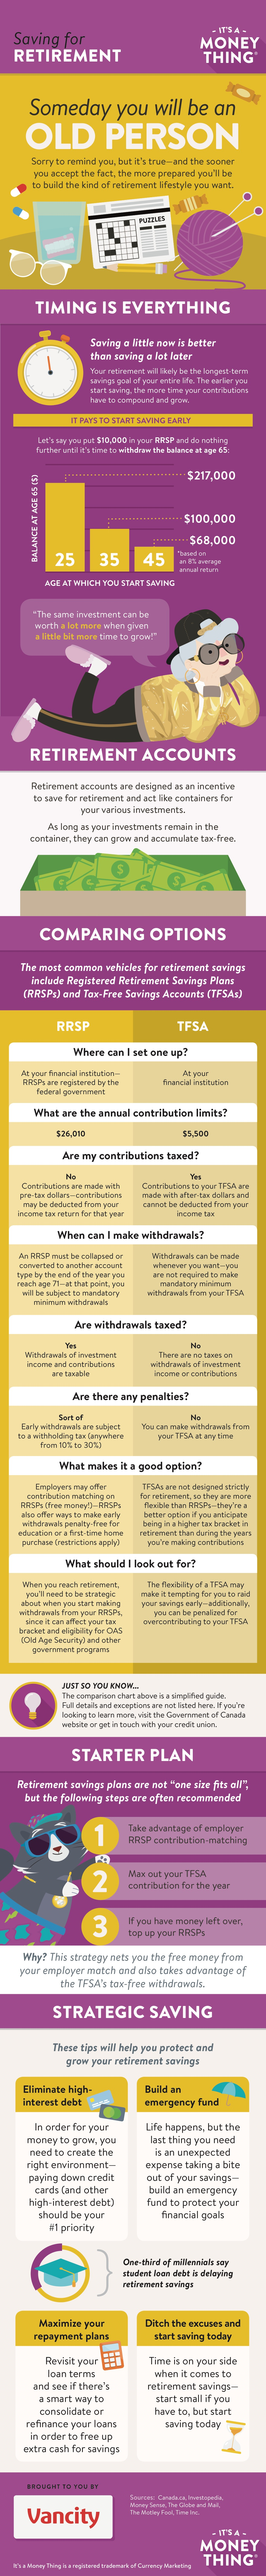 RRSP and TFSA infographic